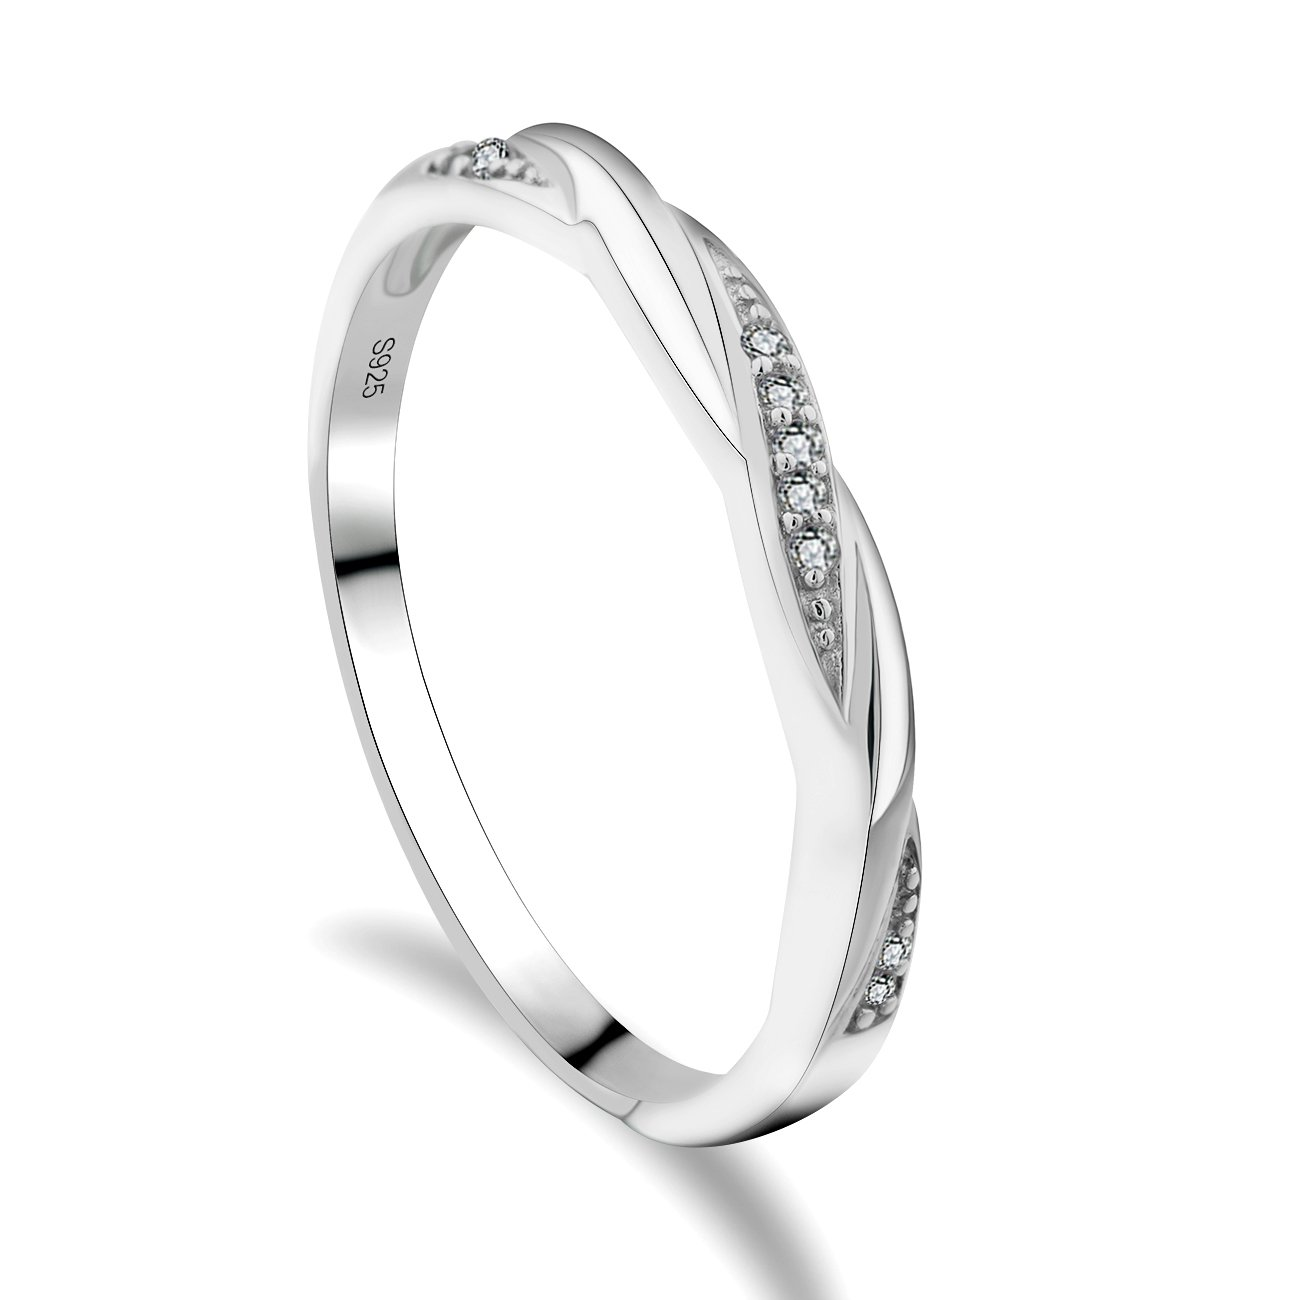 GULICX Skinny 925 Sterling Silver Ring Cubic Zirconia CZ Wedding Promise Eternity Ring Sizes J 1/2, K, L 1/2, N 1/2, O, P, P 1/2, Q, R 1/2, S, T 1/2, U, V, W Gelei Jewelry Co. Ltd. SR05